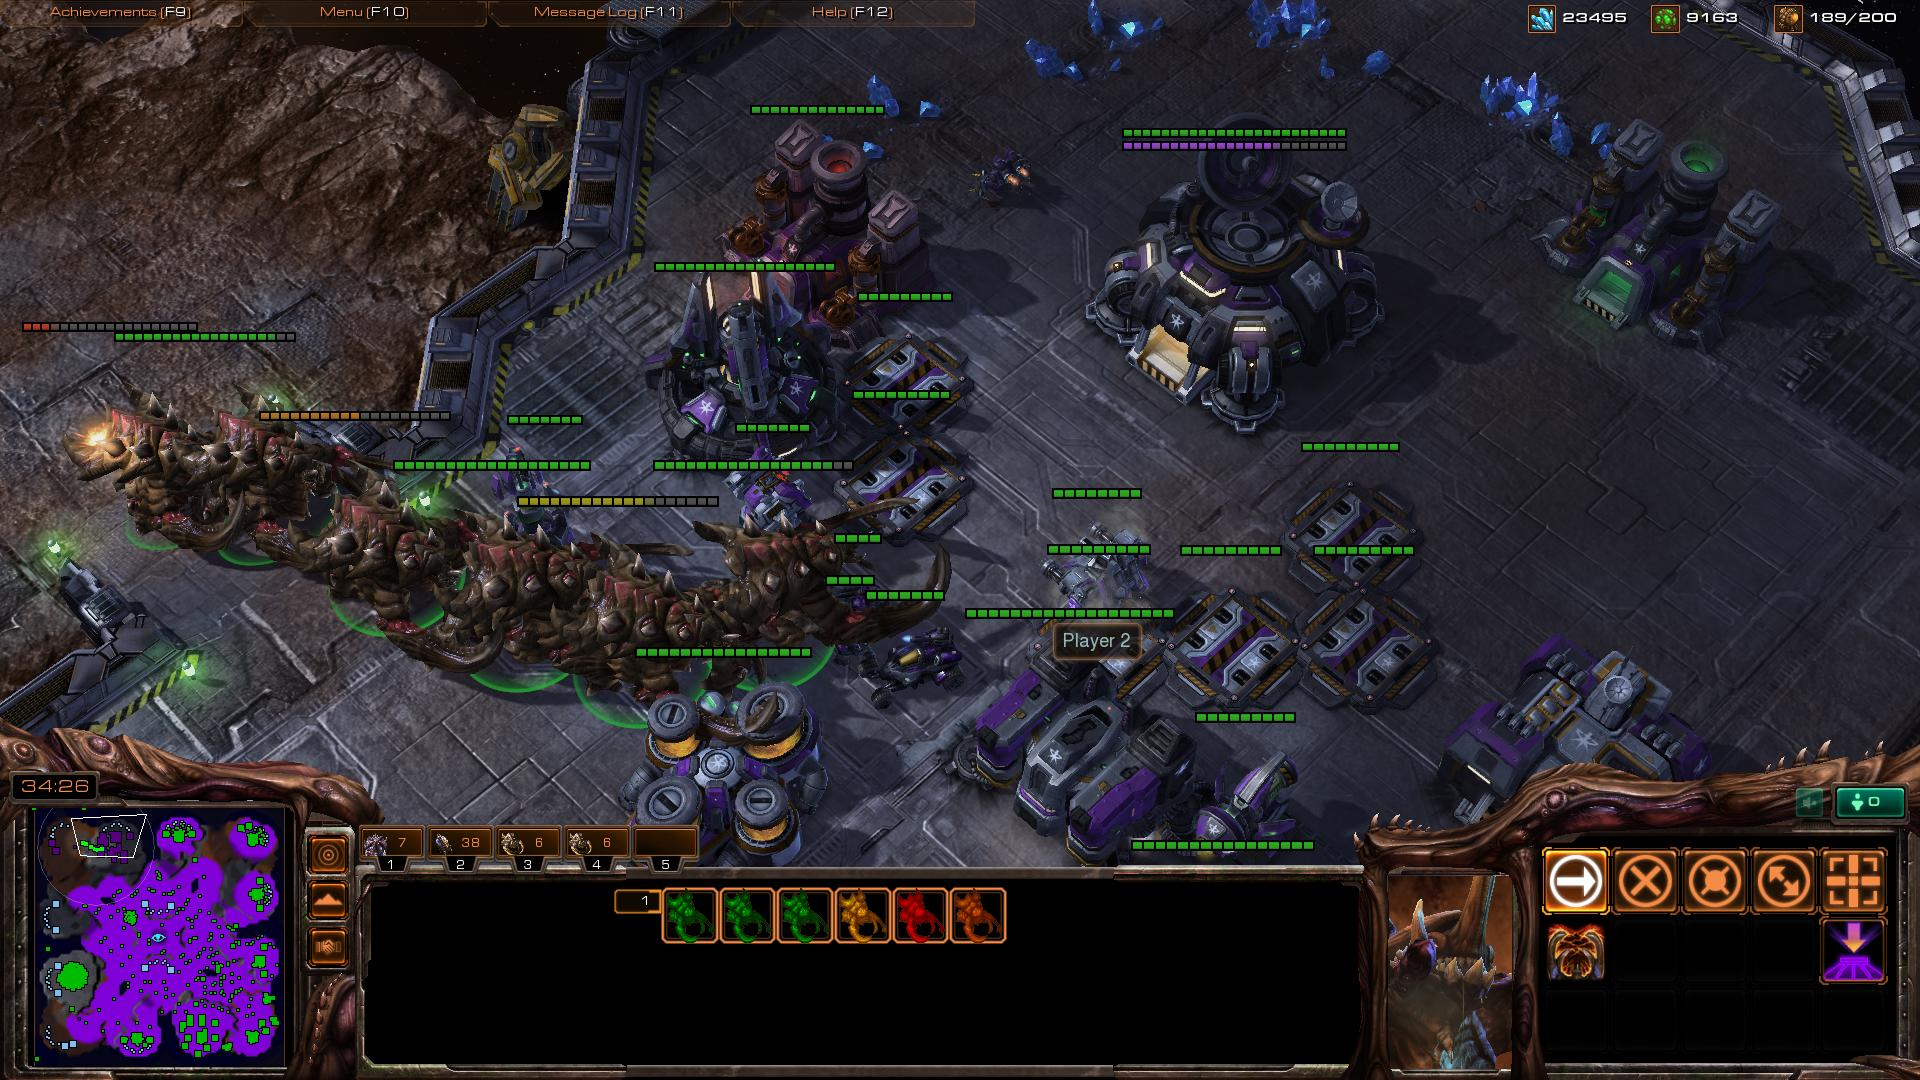 zerg ultralisk sc2 screenshot